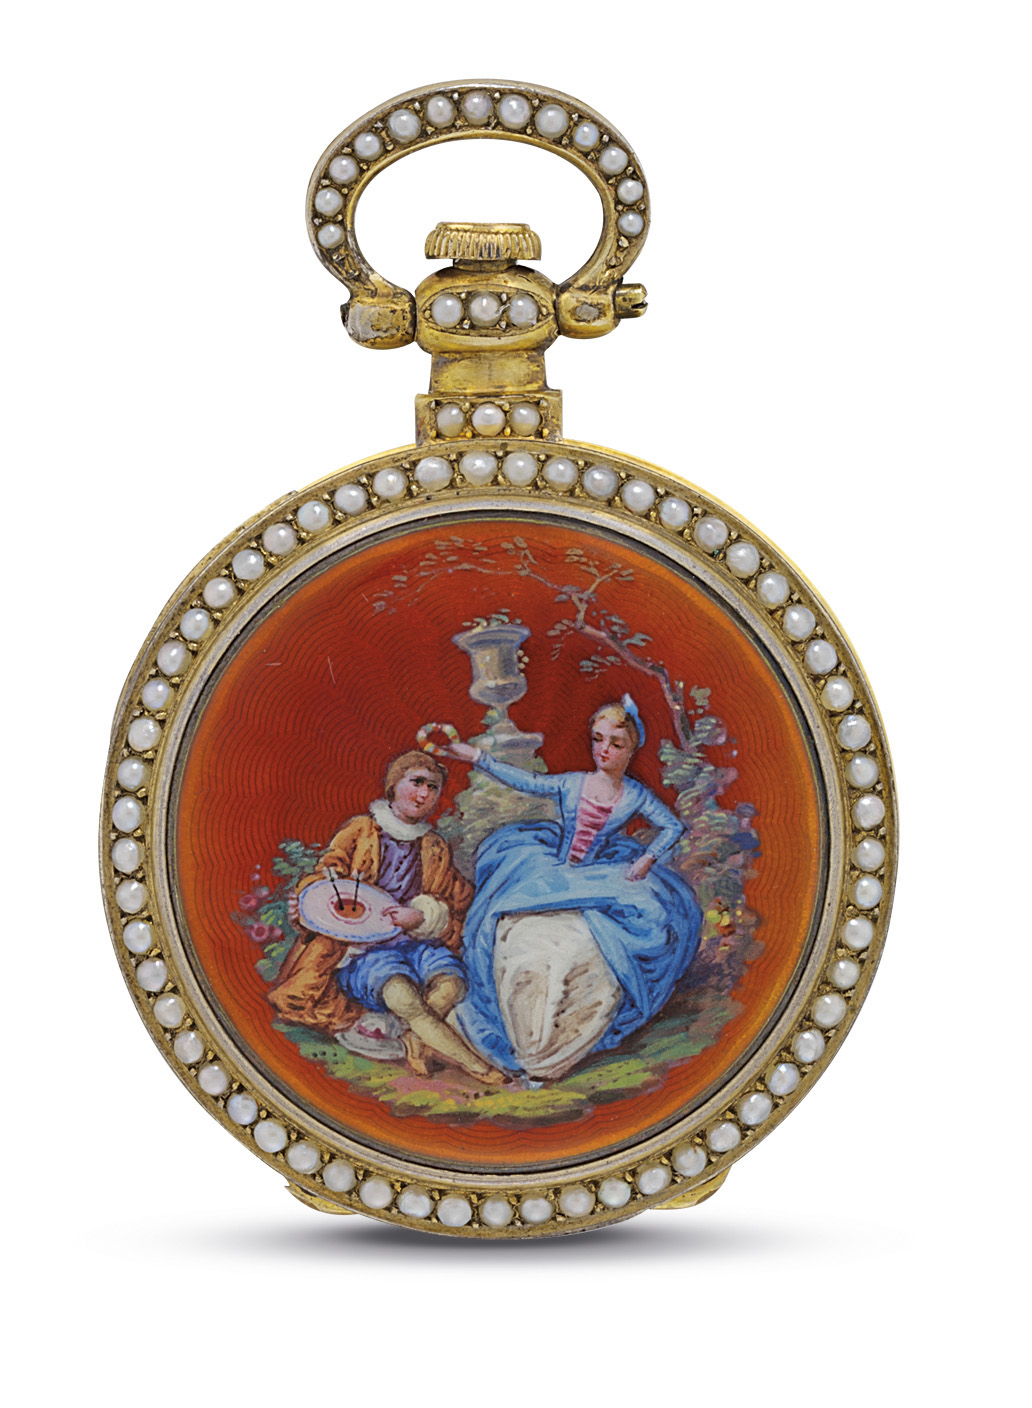 GUINAND. A SILVER GILT, ENAMEL AND PEARL-SET OPENFACE KEYWOUND CYLINDER WATCH WITH CENTRE SECONDS, MADE FOR THE CHINESE MARKET